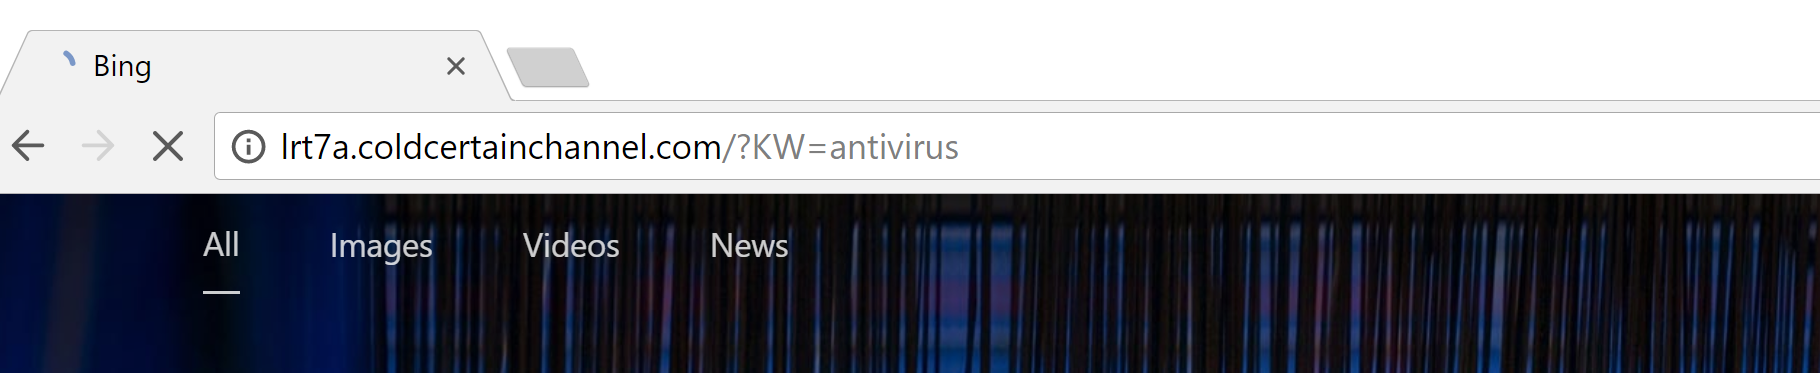 lrt7a.coldcertainchannel.com redirect virus